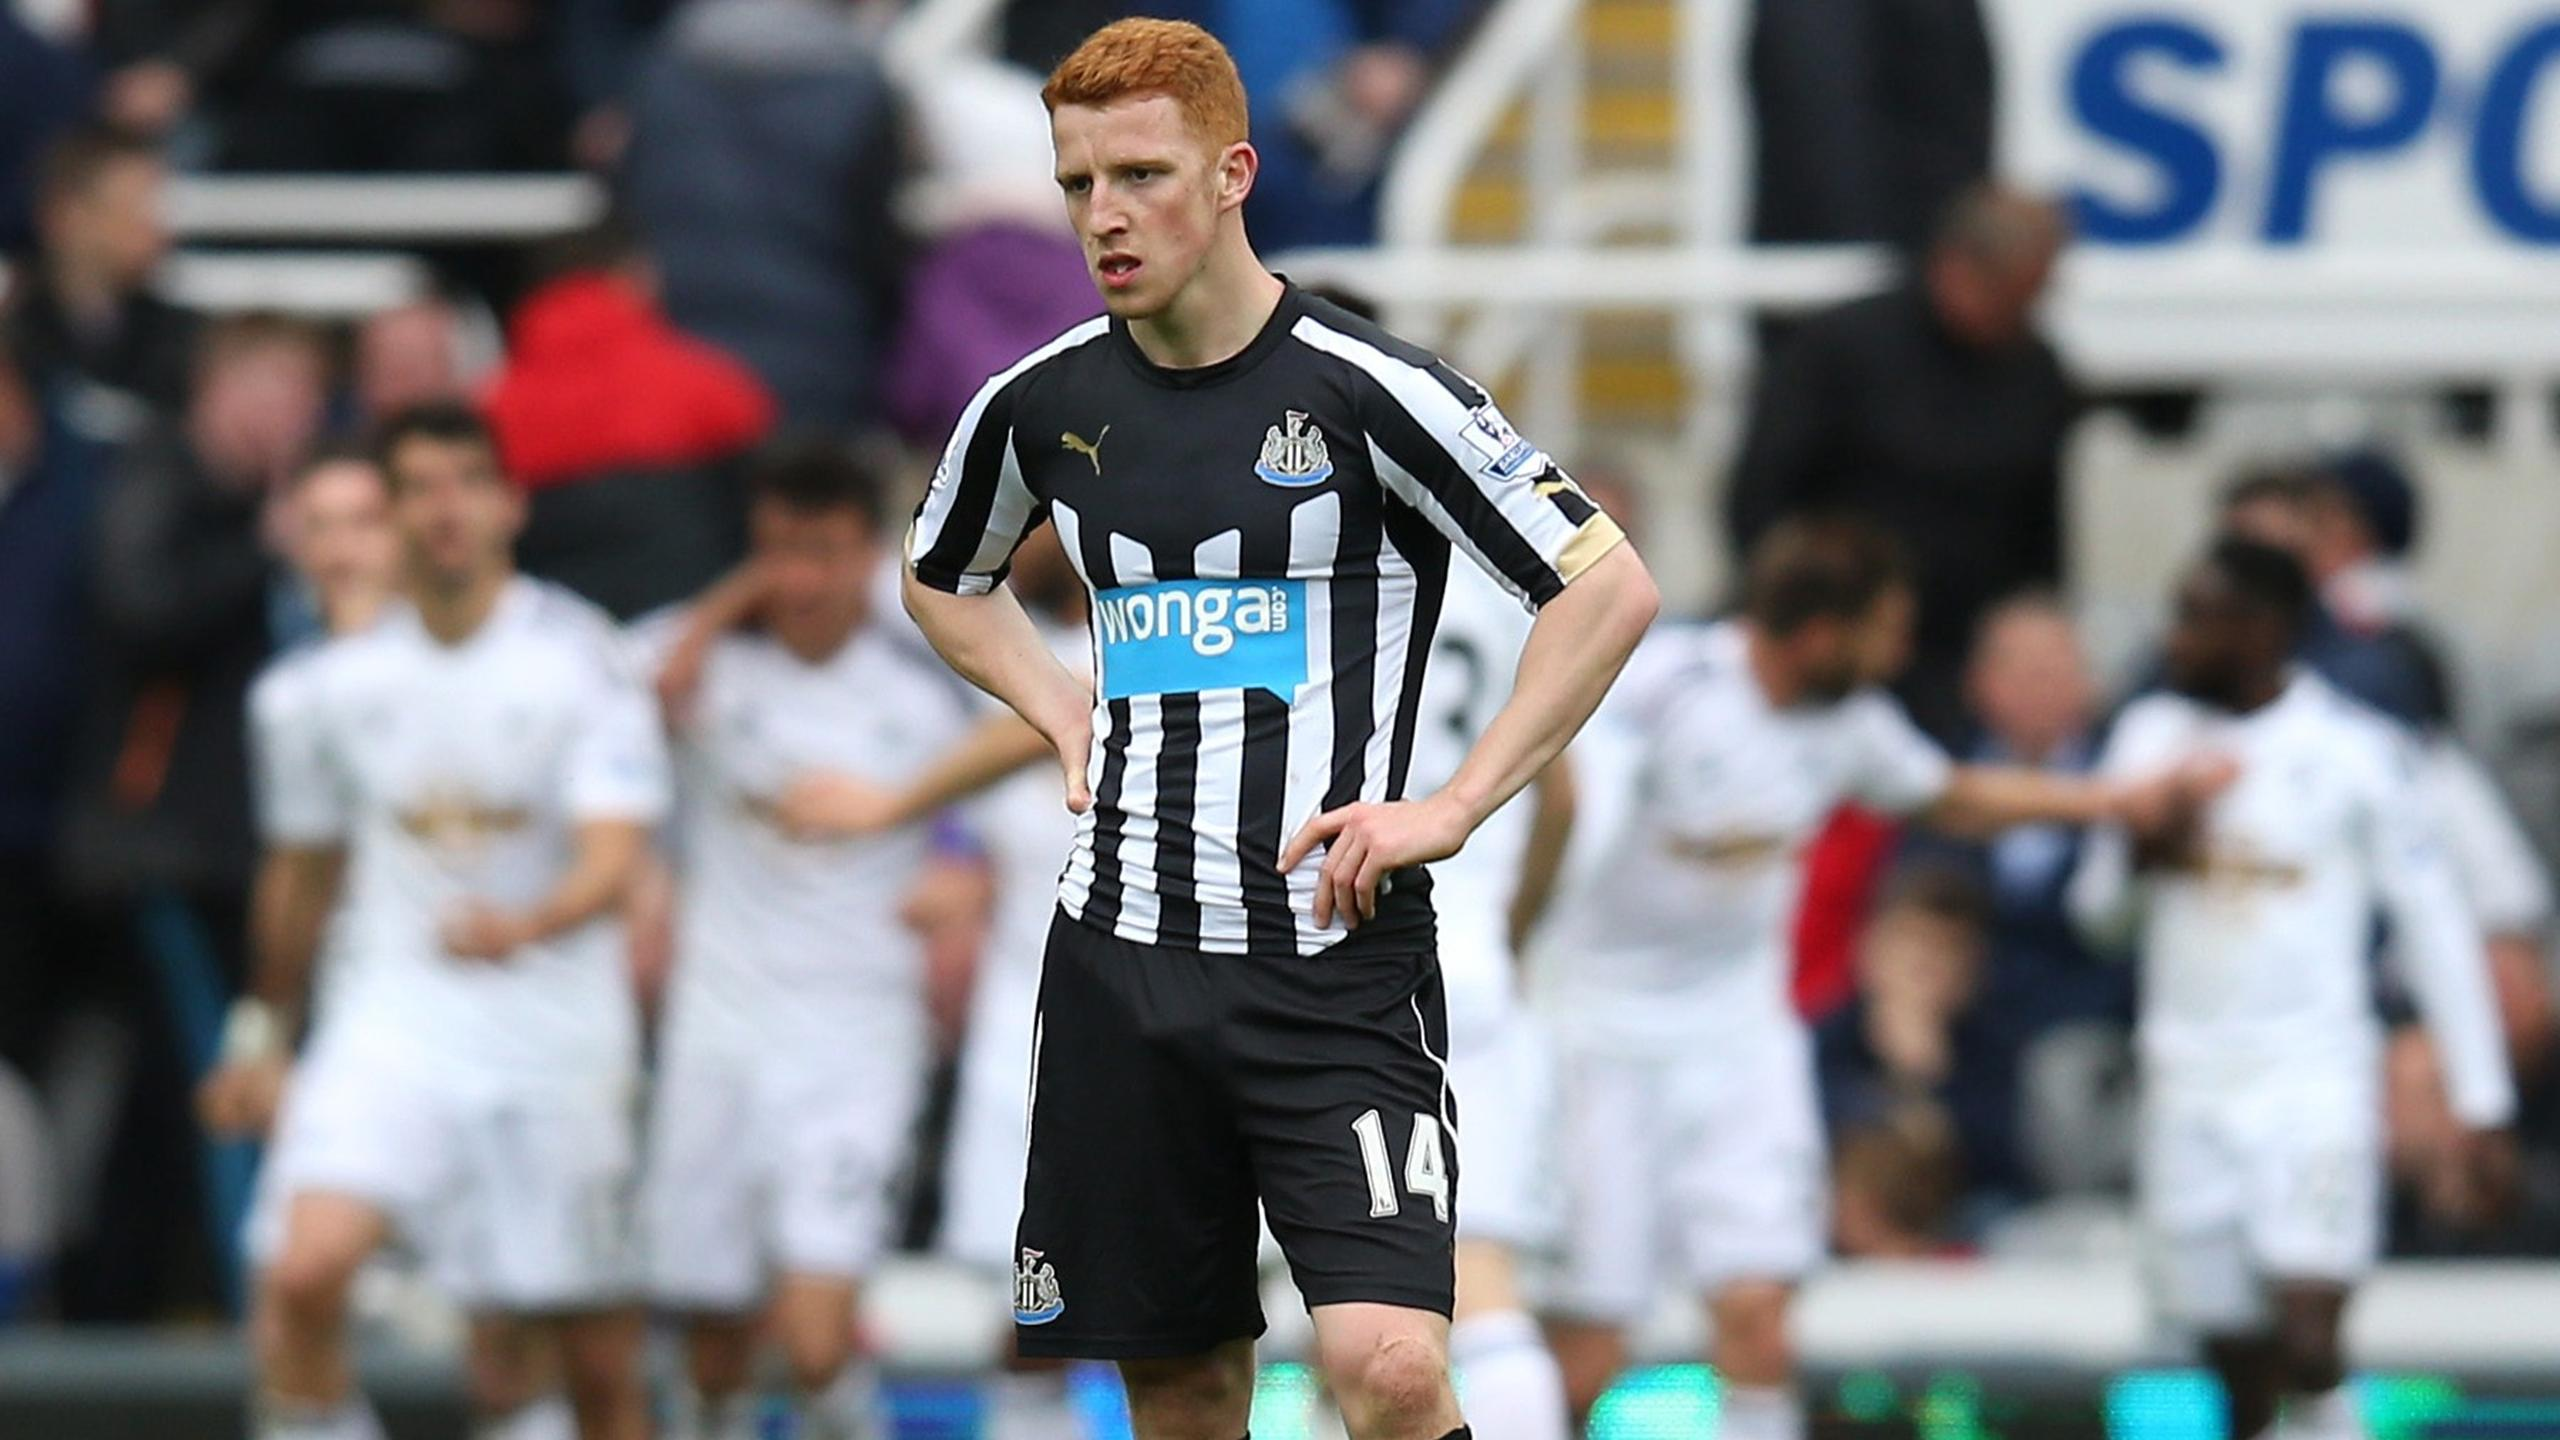 Video: Newcastle United vs Swansea City